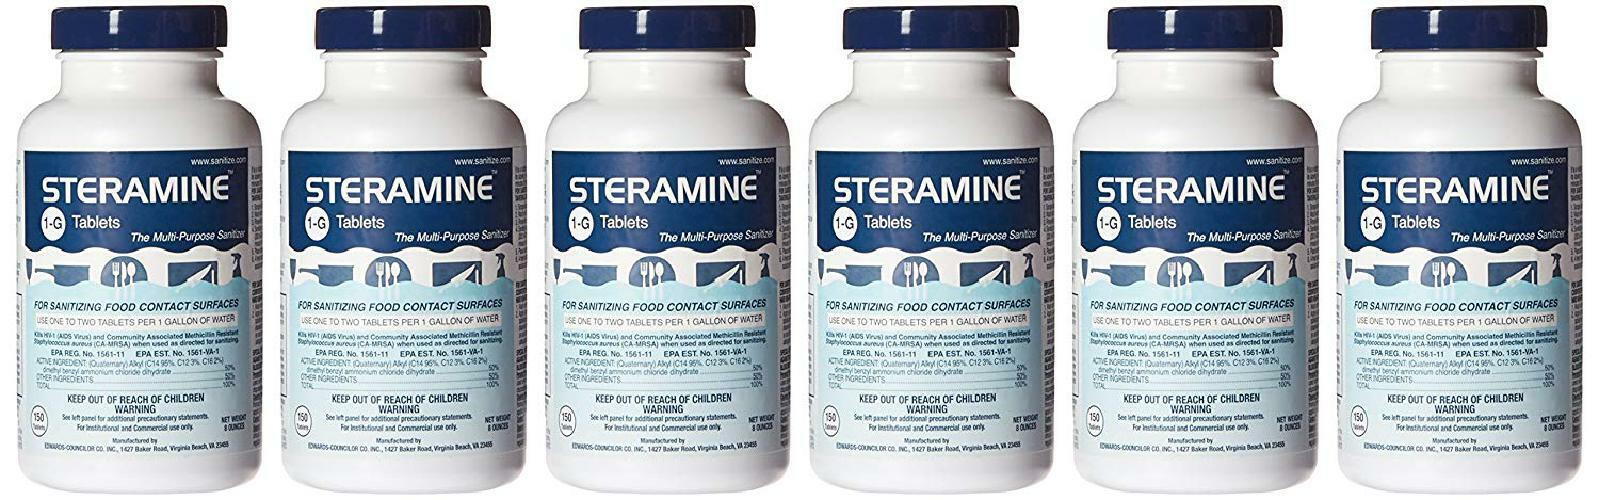 Steramine Quaternary Sanitizing Tablets, Case Of 6 3130